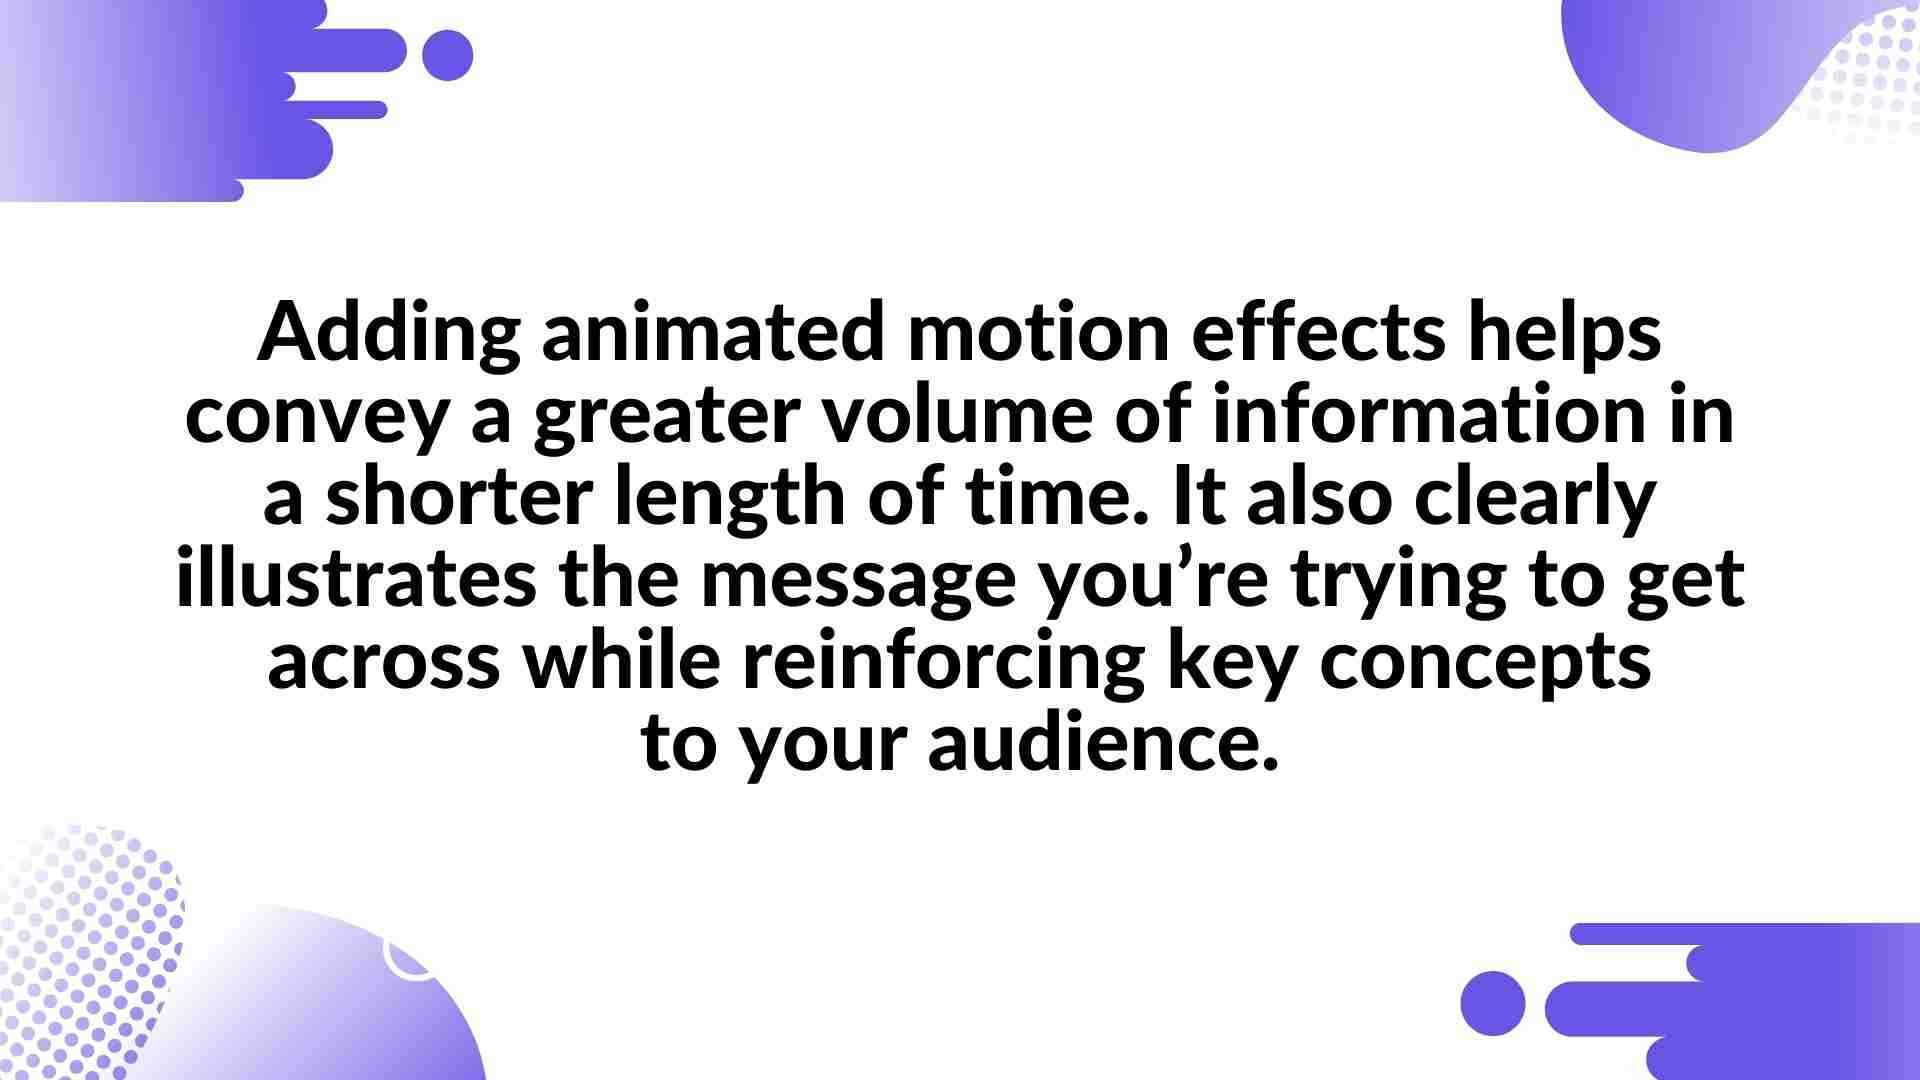 Adding animated motion effects helps convey a greater volume of information in a shorter length of time. It also clearly illustrates the message you're trying to get across while reinforcing key concepts to your audience. - Animated Video in Presentations